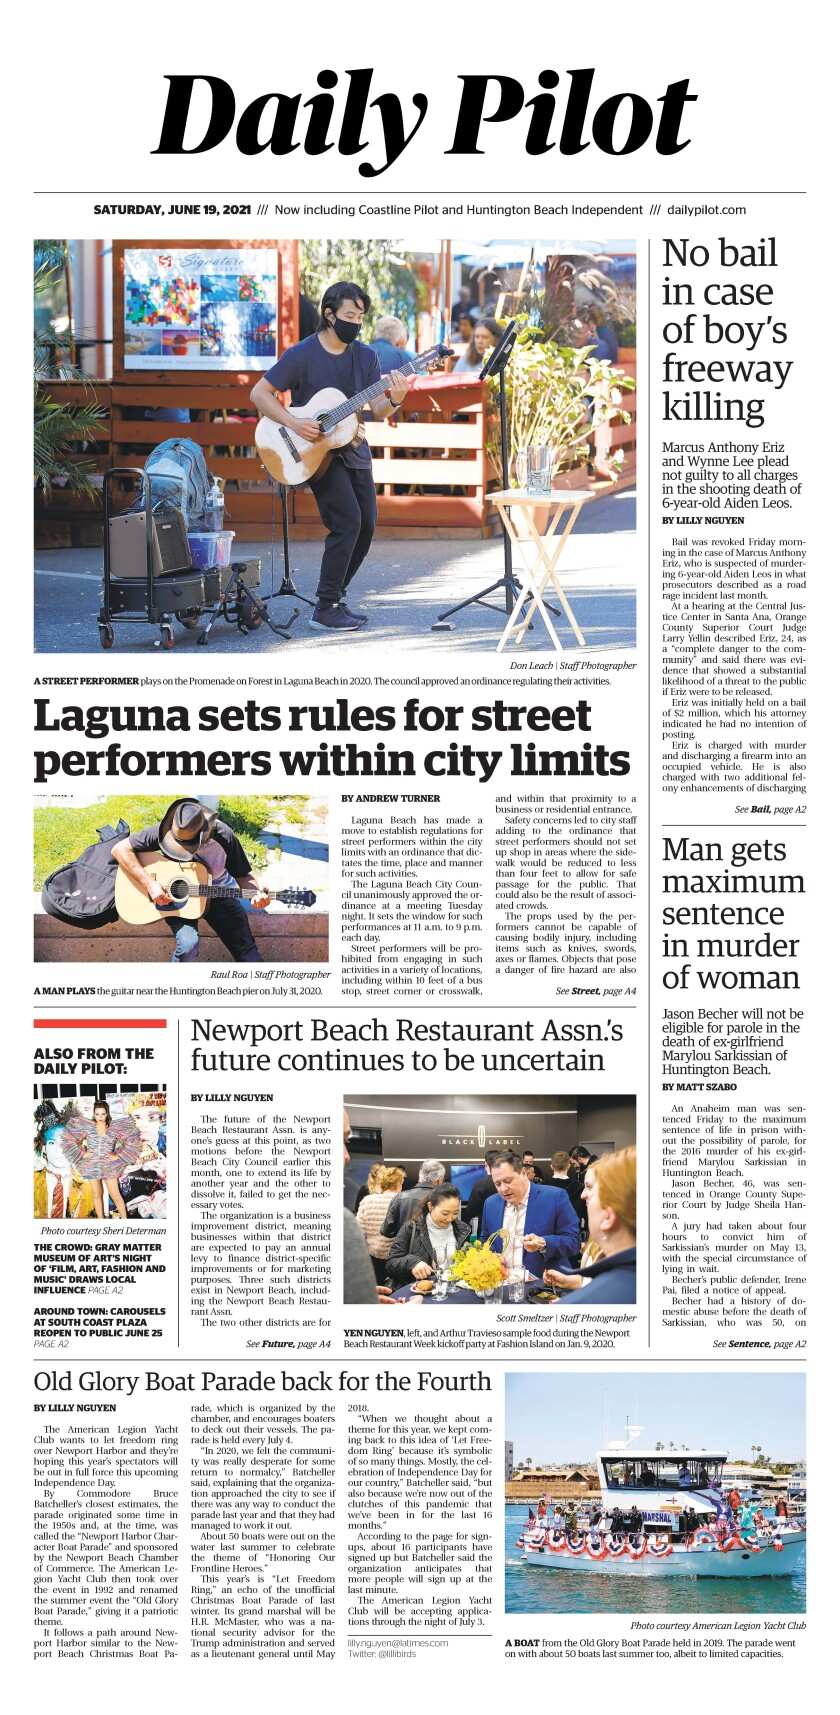 Front page of Daily Pilot e-newspaper for Saturday, June 19, 2021.